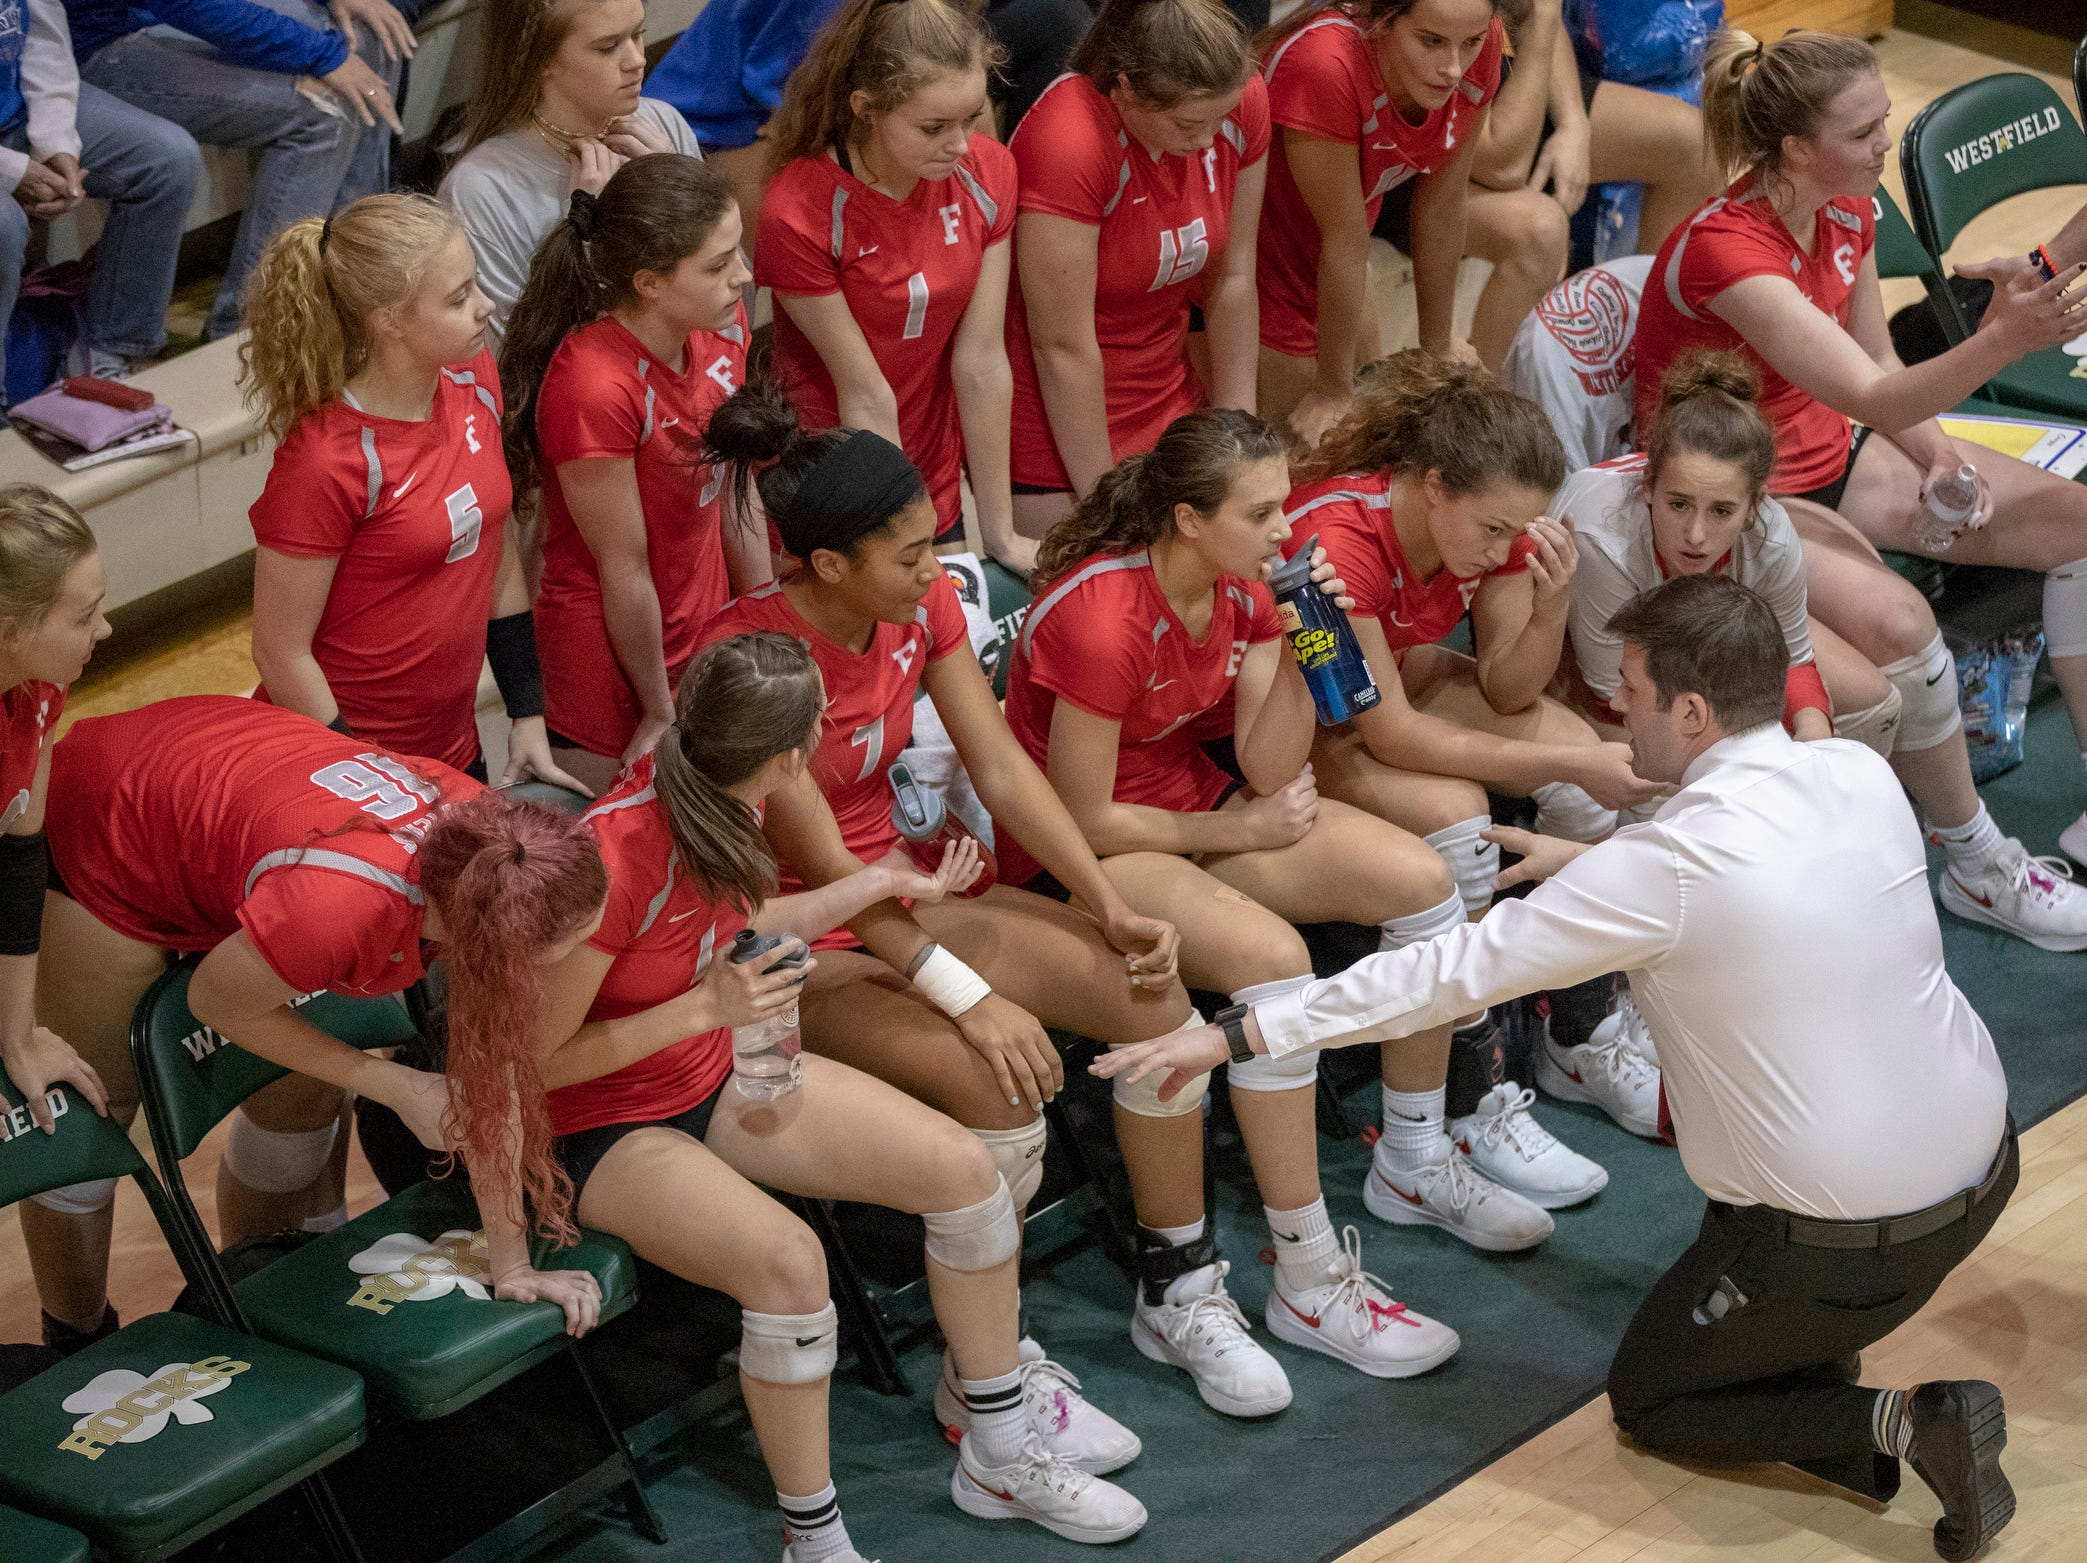 Fishers High School huddles up during a timeout as they work on defeating Hamilton Southeastern High School in three straight sets in the first round of the sectional at Westfield High School, Westfield, Thursday, Oct. 11, 2018. The win matches them up with Westfield High School for a game on Saturday morning at 11a.m.